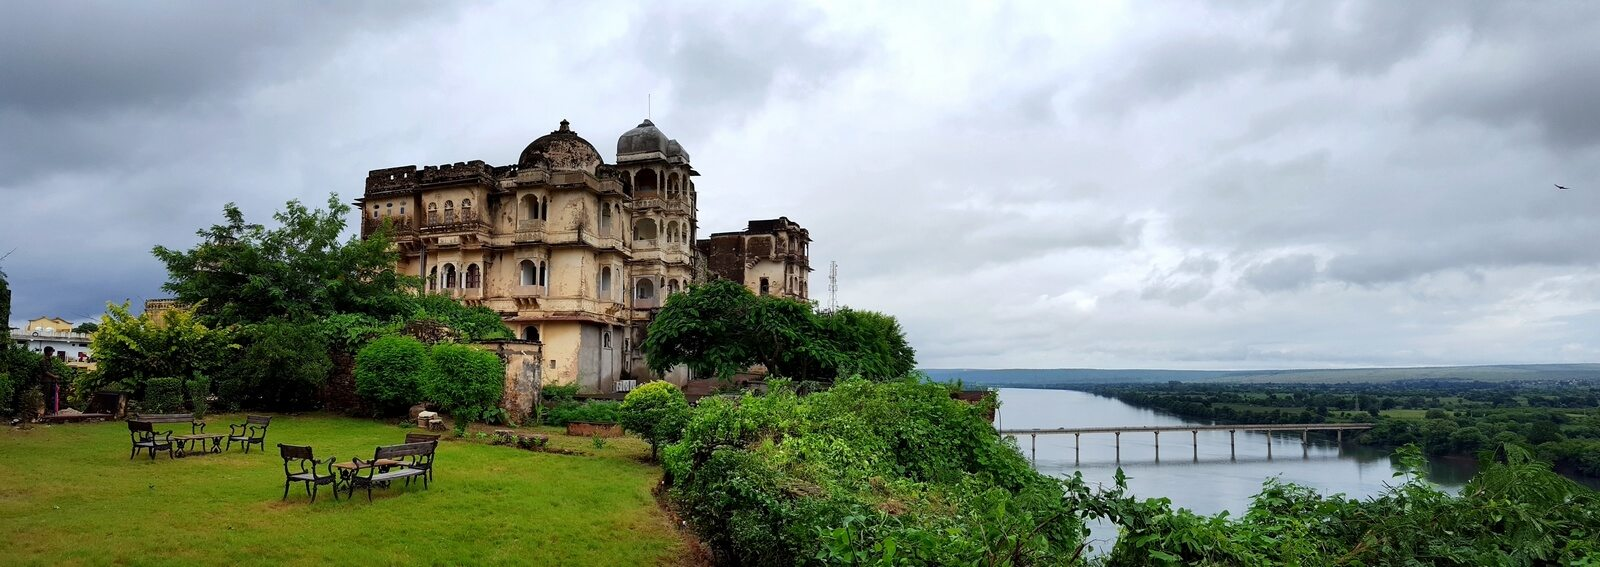 Rajasthan Tour in Monsoon - Bhainsrorgarh